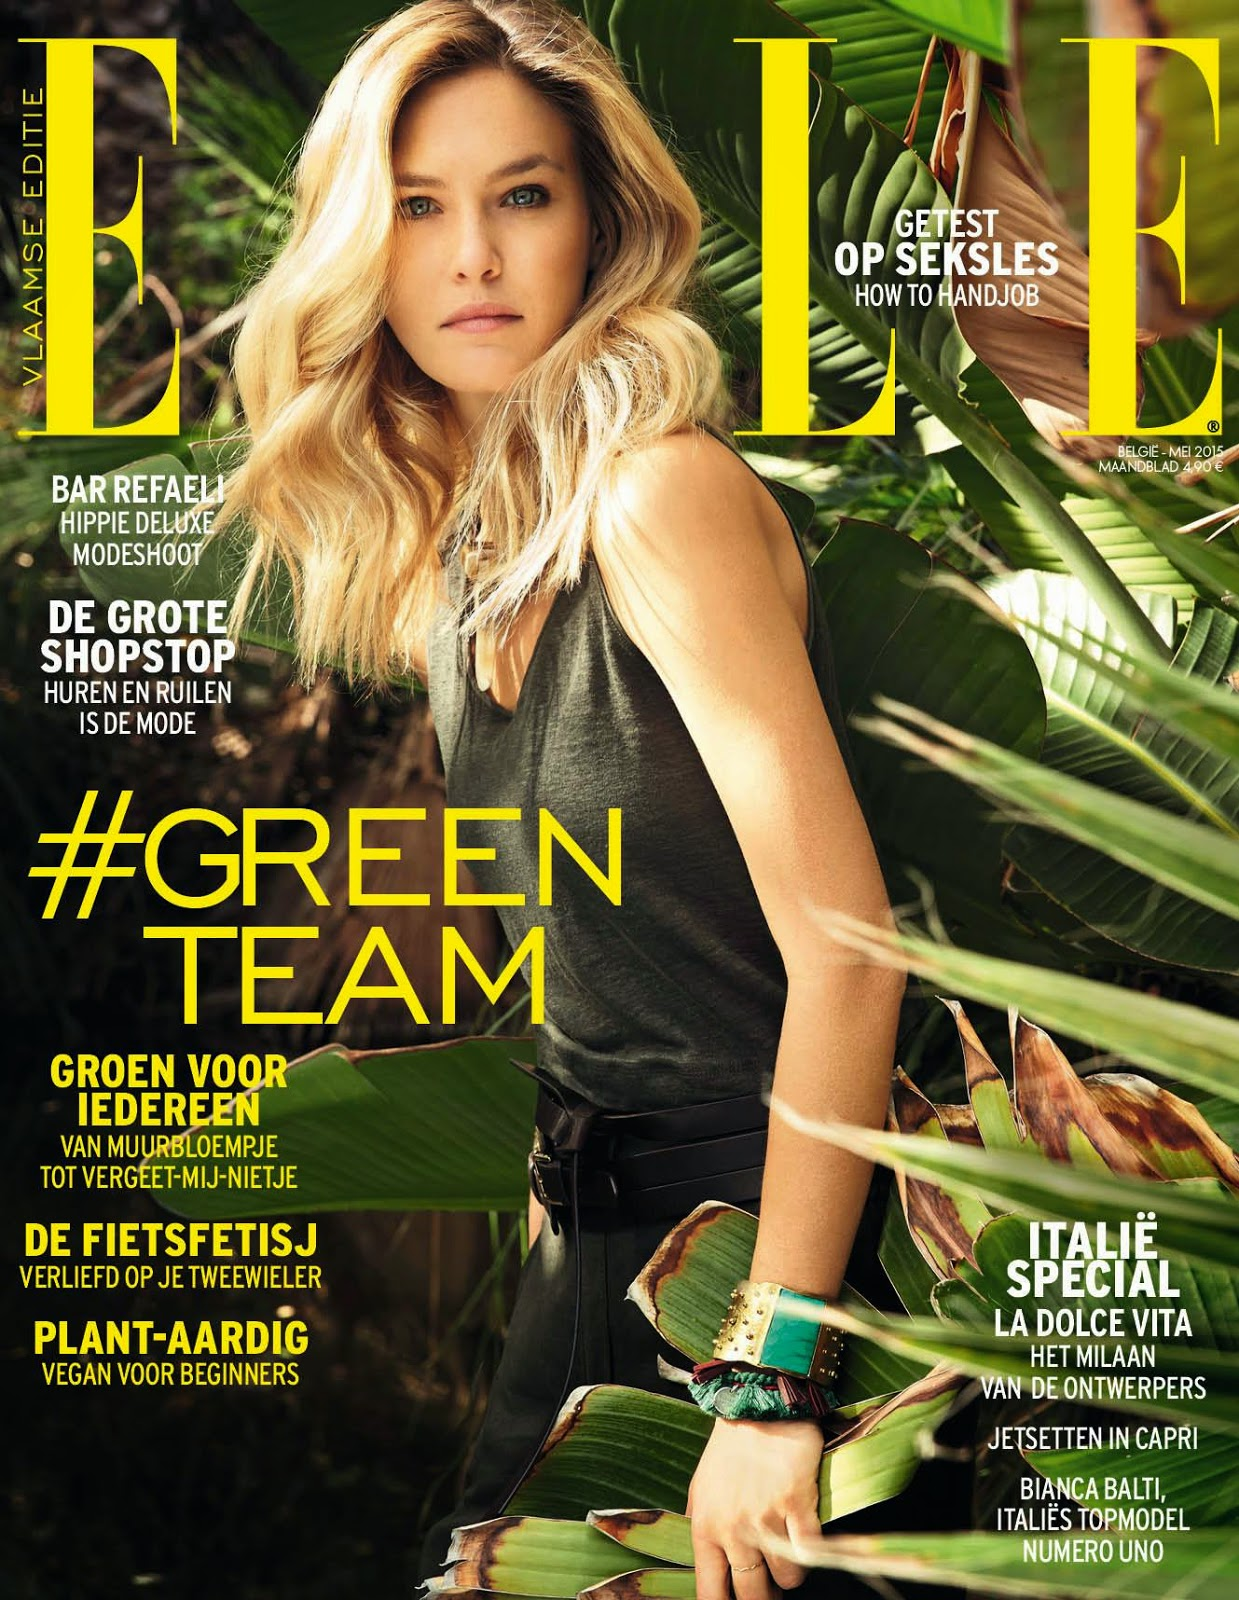 Fashion Model, Actress @ Bar Refaeli - Elle Belgium, May 2015